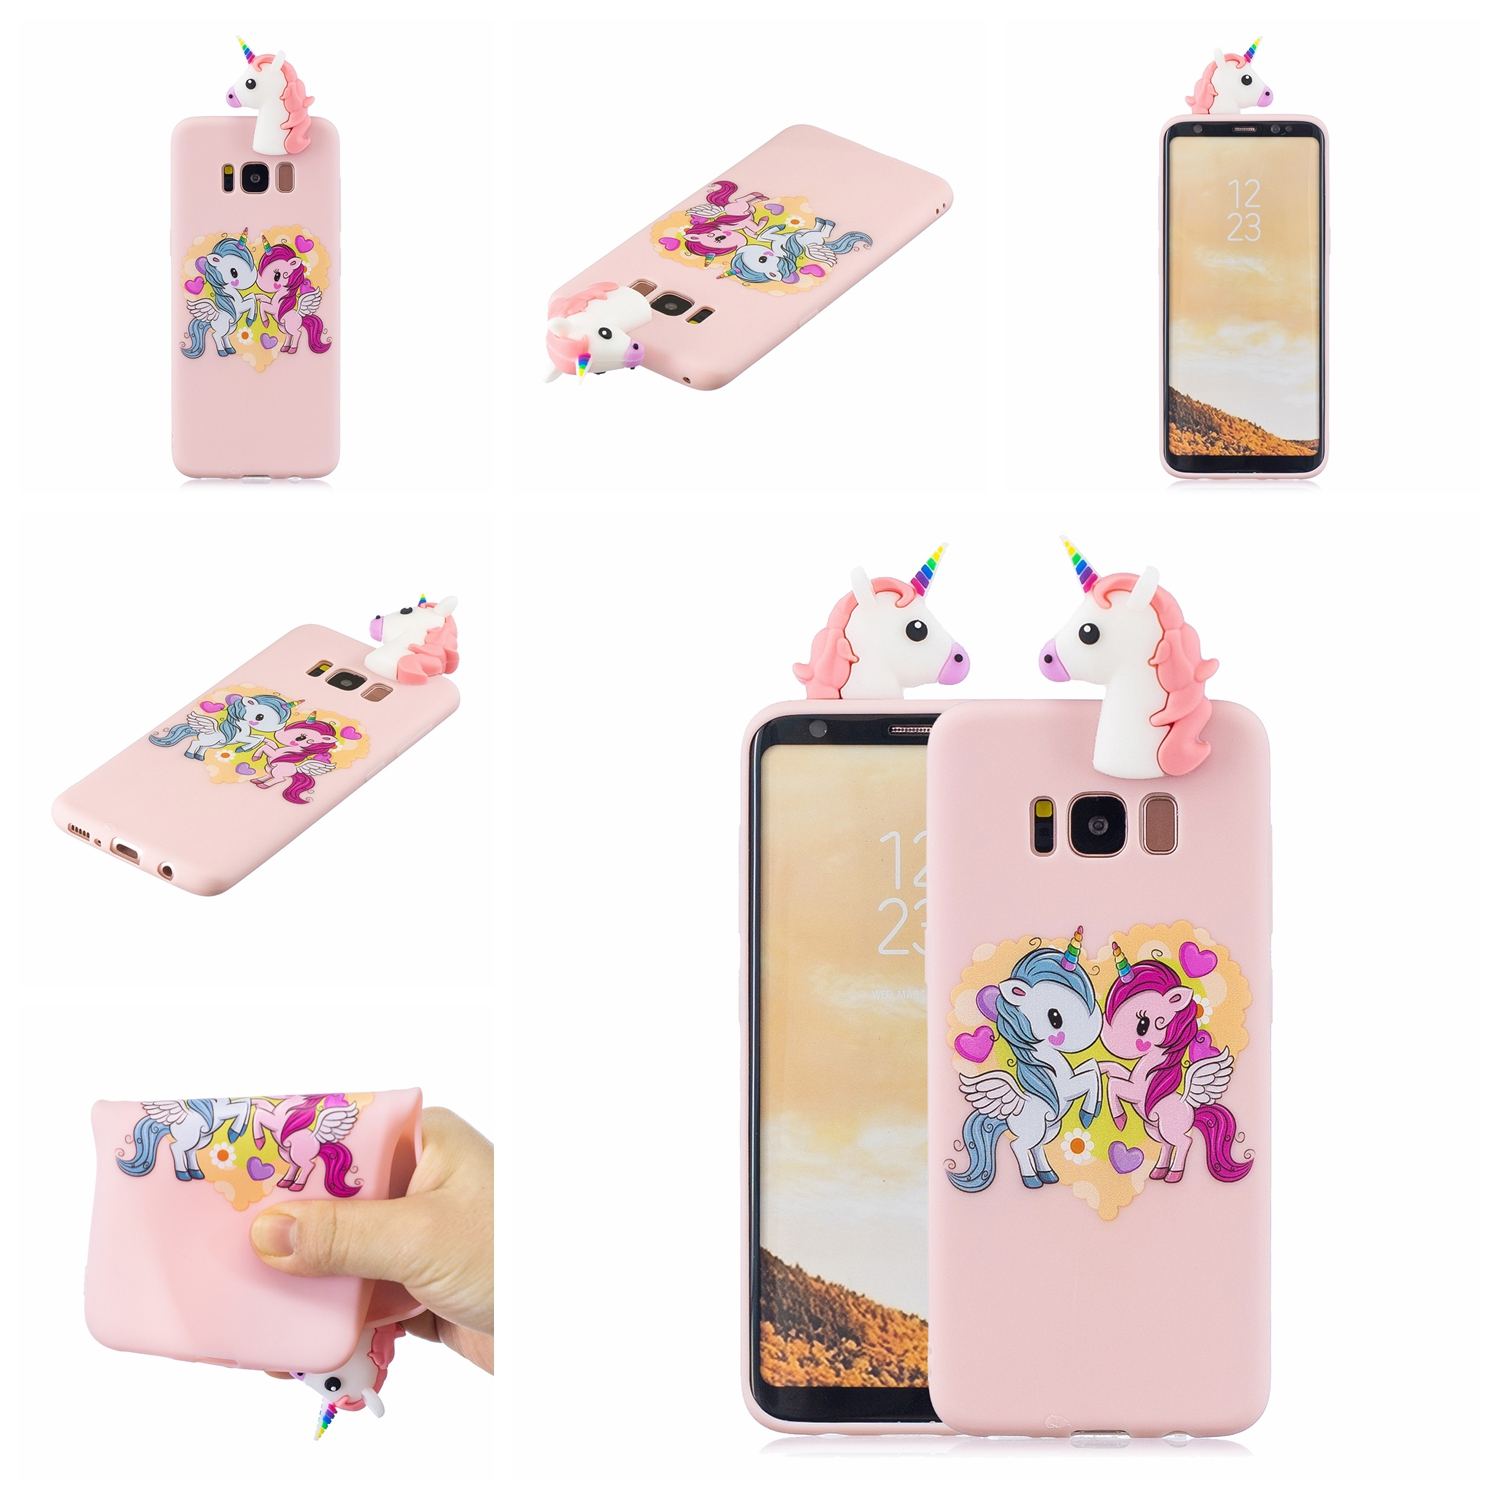 For Samsung S8 3D Cartoon Lovely Coloured Painted Soft TPU Back Cover Non-slip Shockproof Full Protective Case Light pink